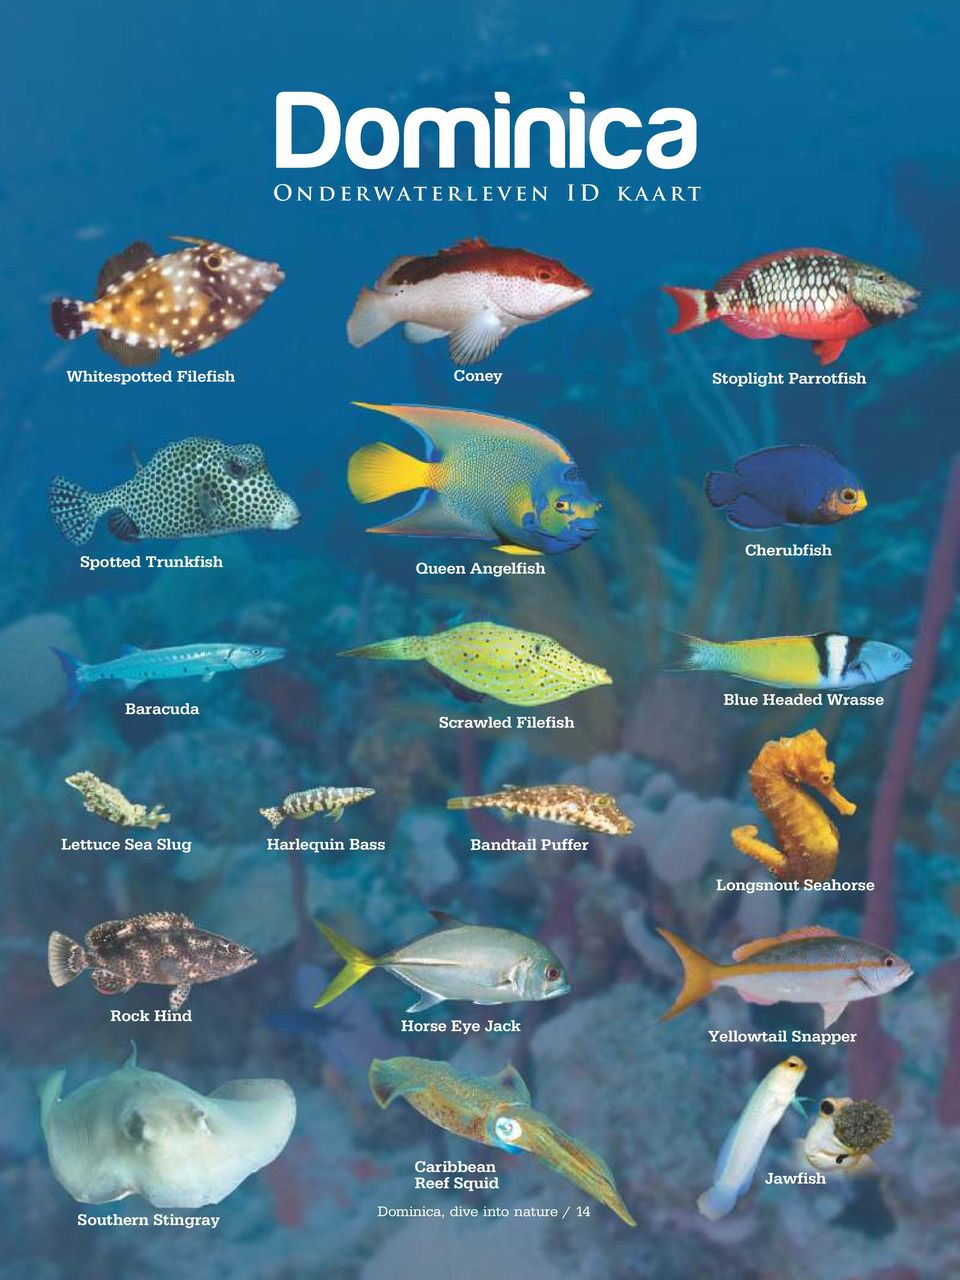 Headed Wrasse Lettuce Sea Slug Harlequin Bass Bandtail Puffer Longsnout Seahorse Rock Hind